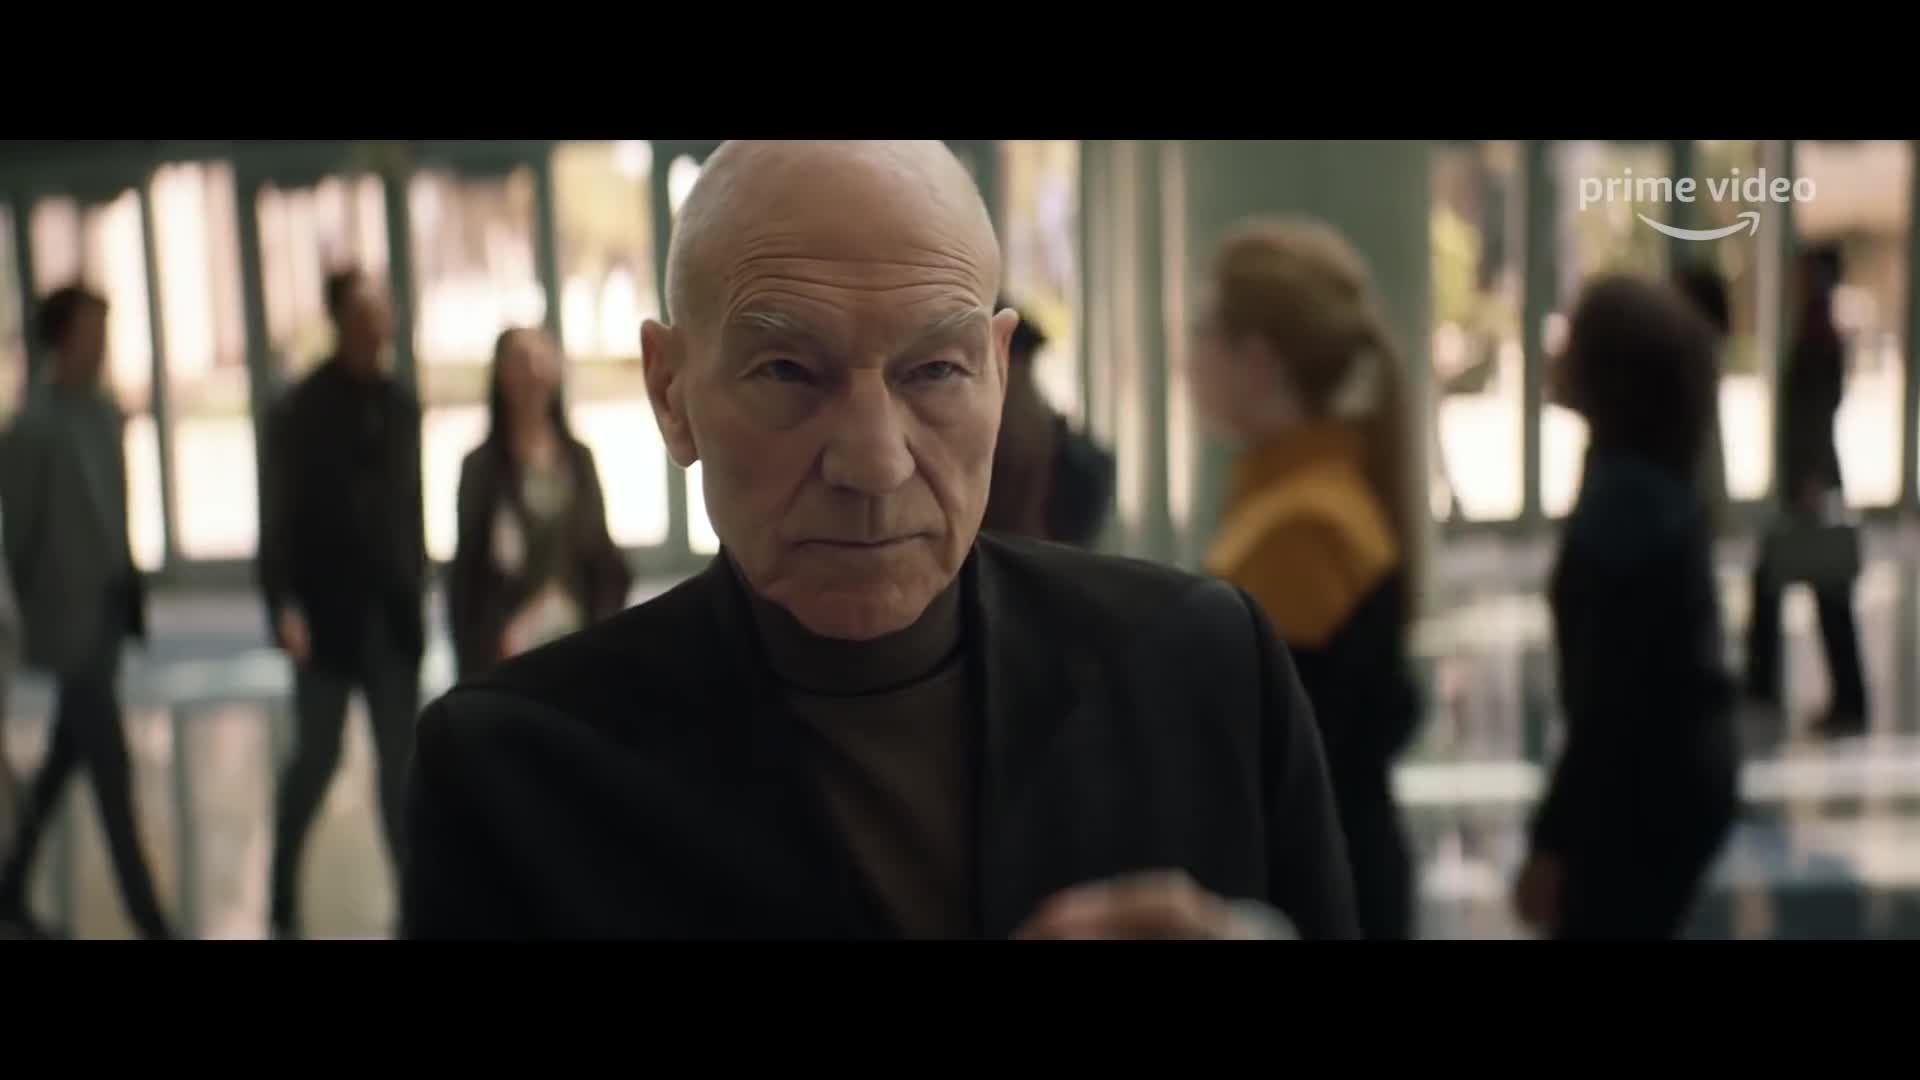 Trailer, Serie, Teaser, TV-Serie, Star Trek, Picard